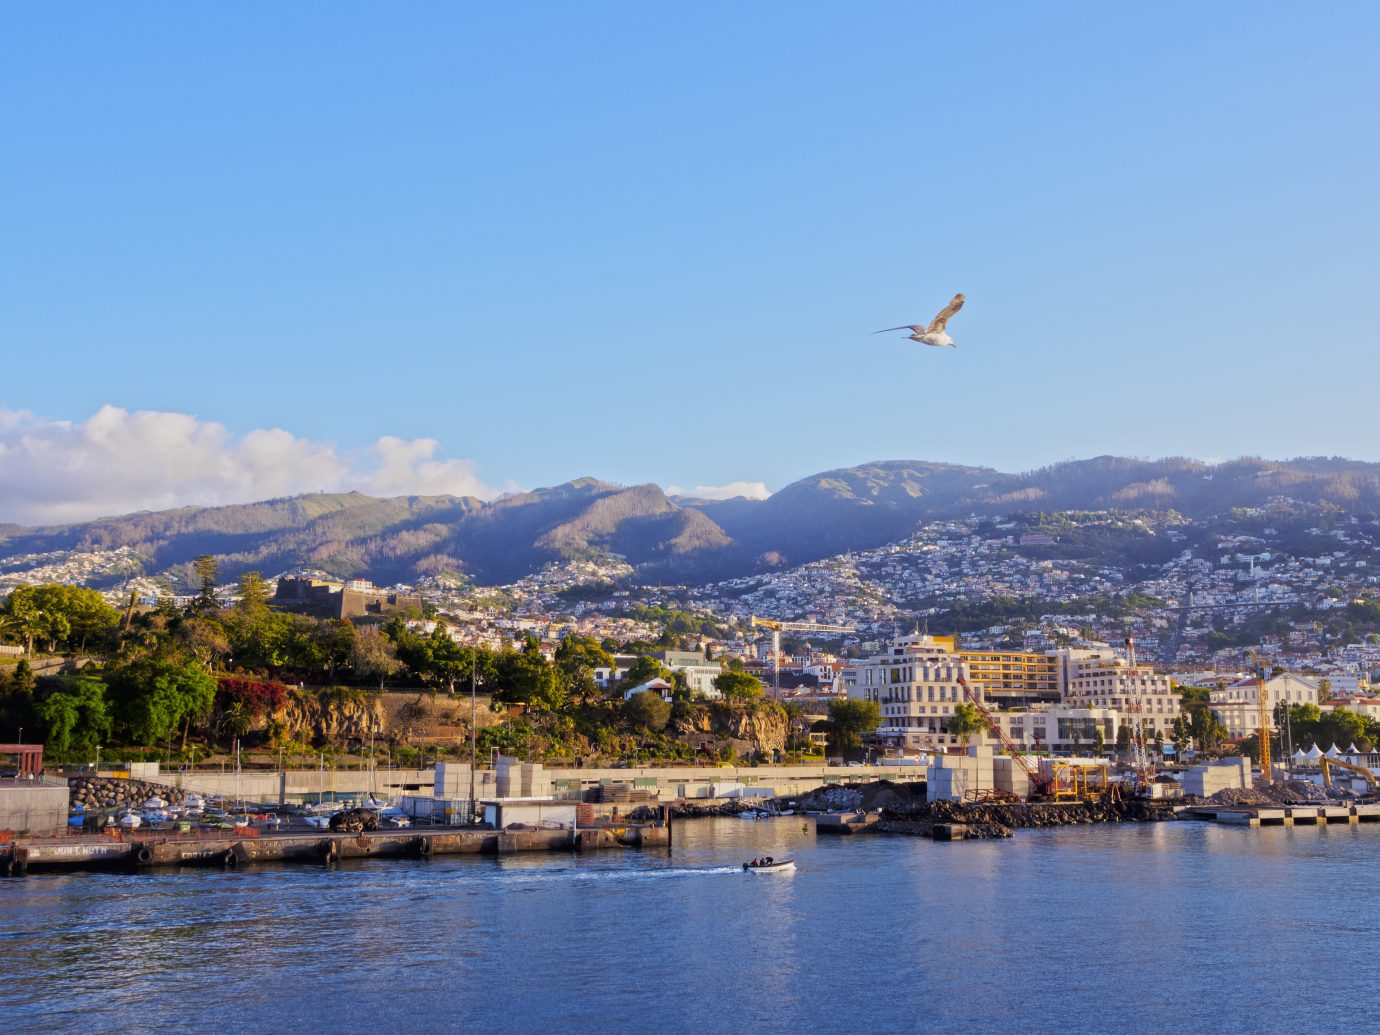 Portugal, Madeira, Funchal, Cityscape viewed from the ferry leaving the port.